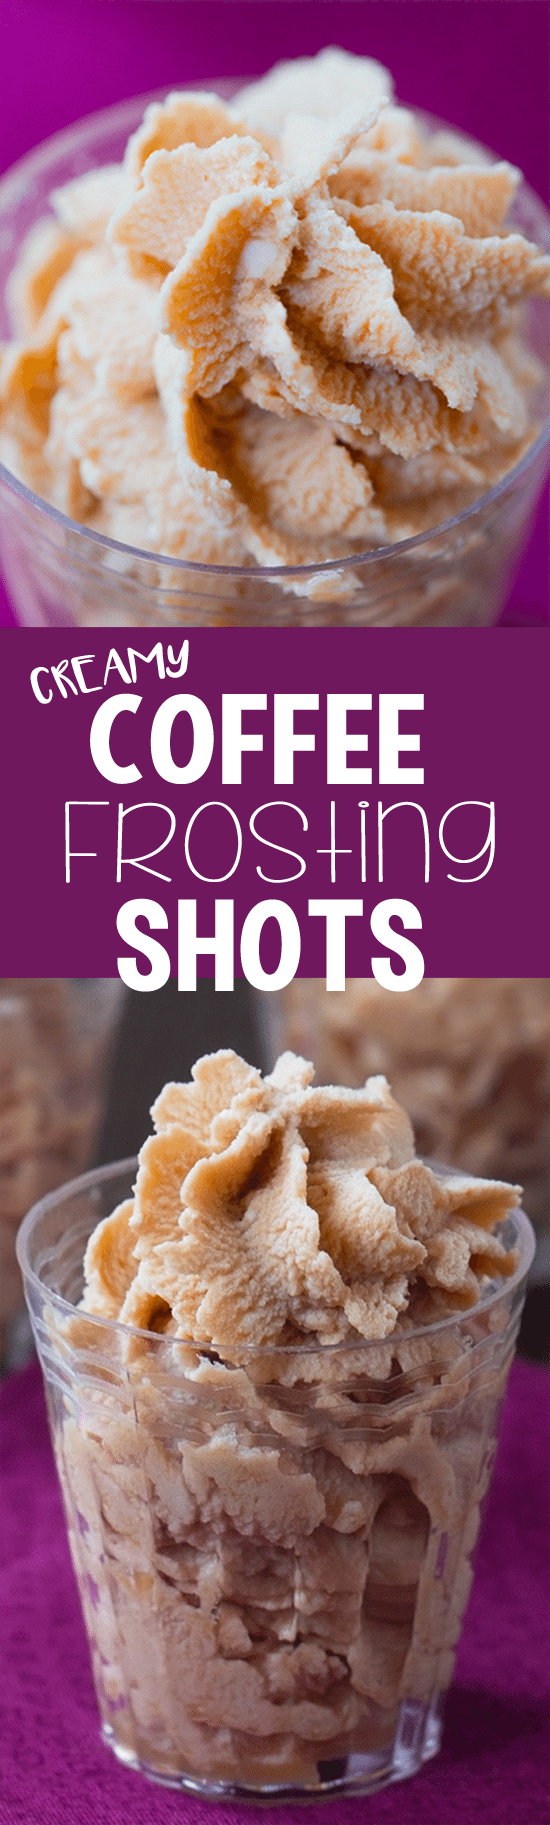 Just FOUR ingredients to make these swirly coffee frosting shots!